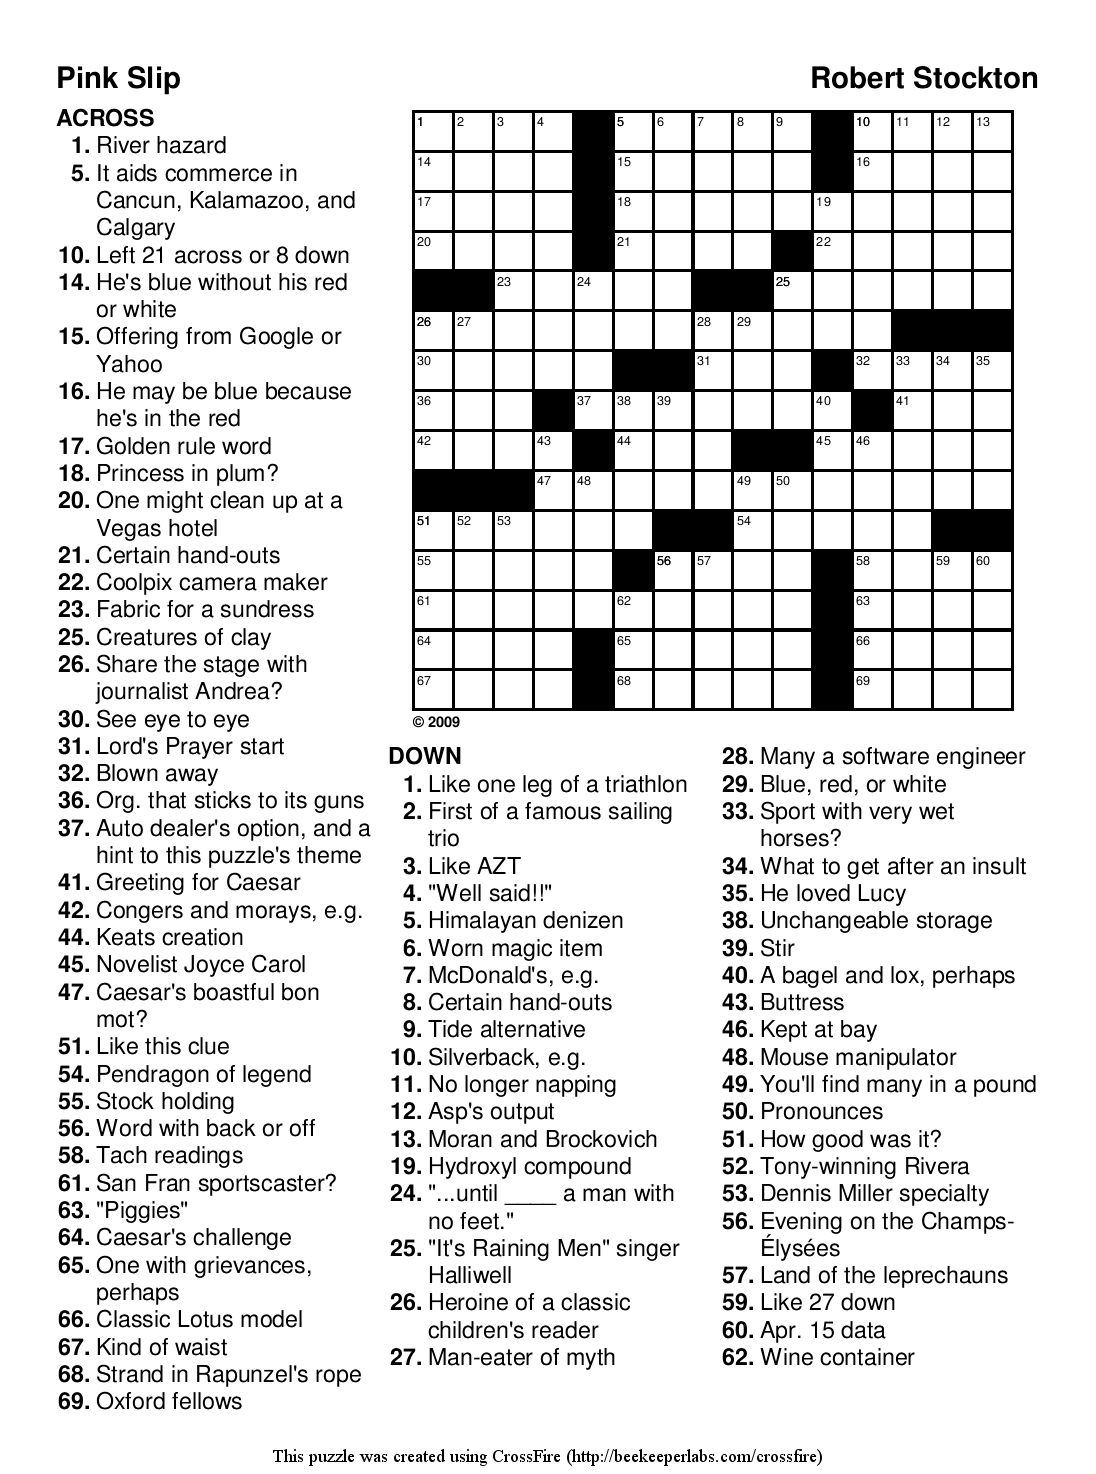 Printable Puzzles For Adults | Easy Word Puzzles Printable Festivals - Printable Crossword Puzzles For Adults Easy